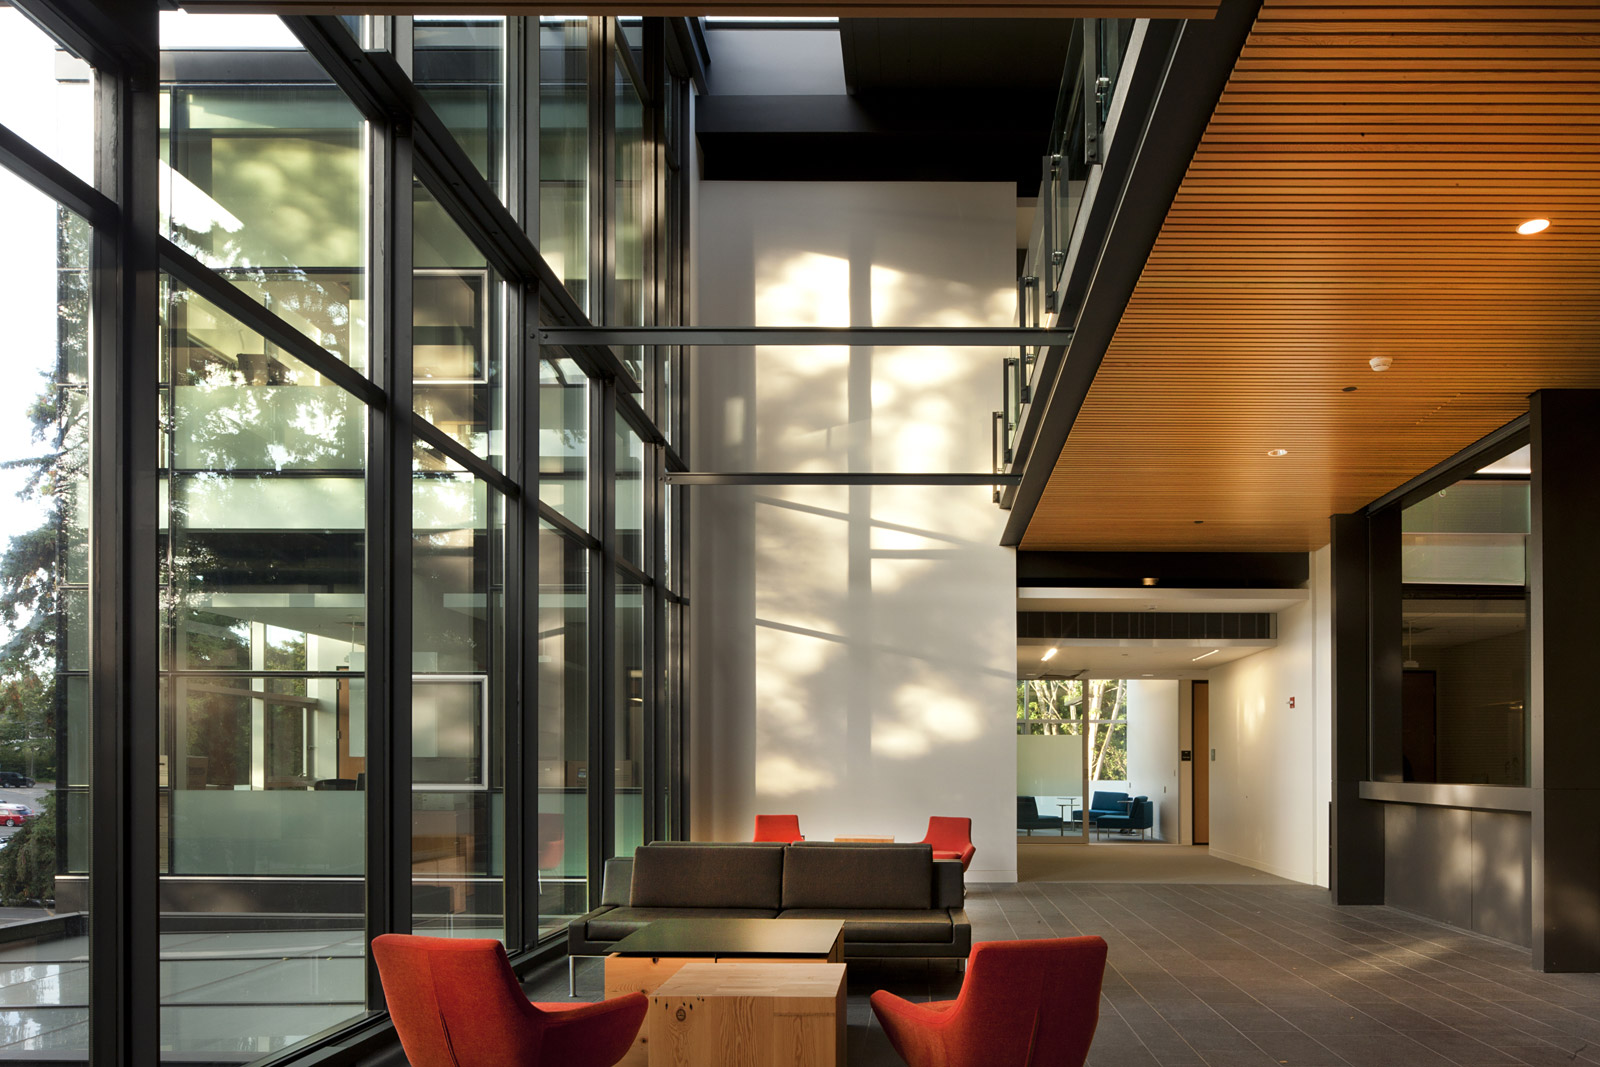 interior architecture color and materials move you through the space. DGLGYGM